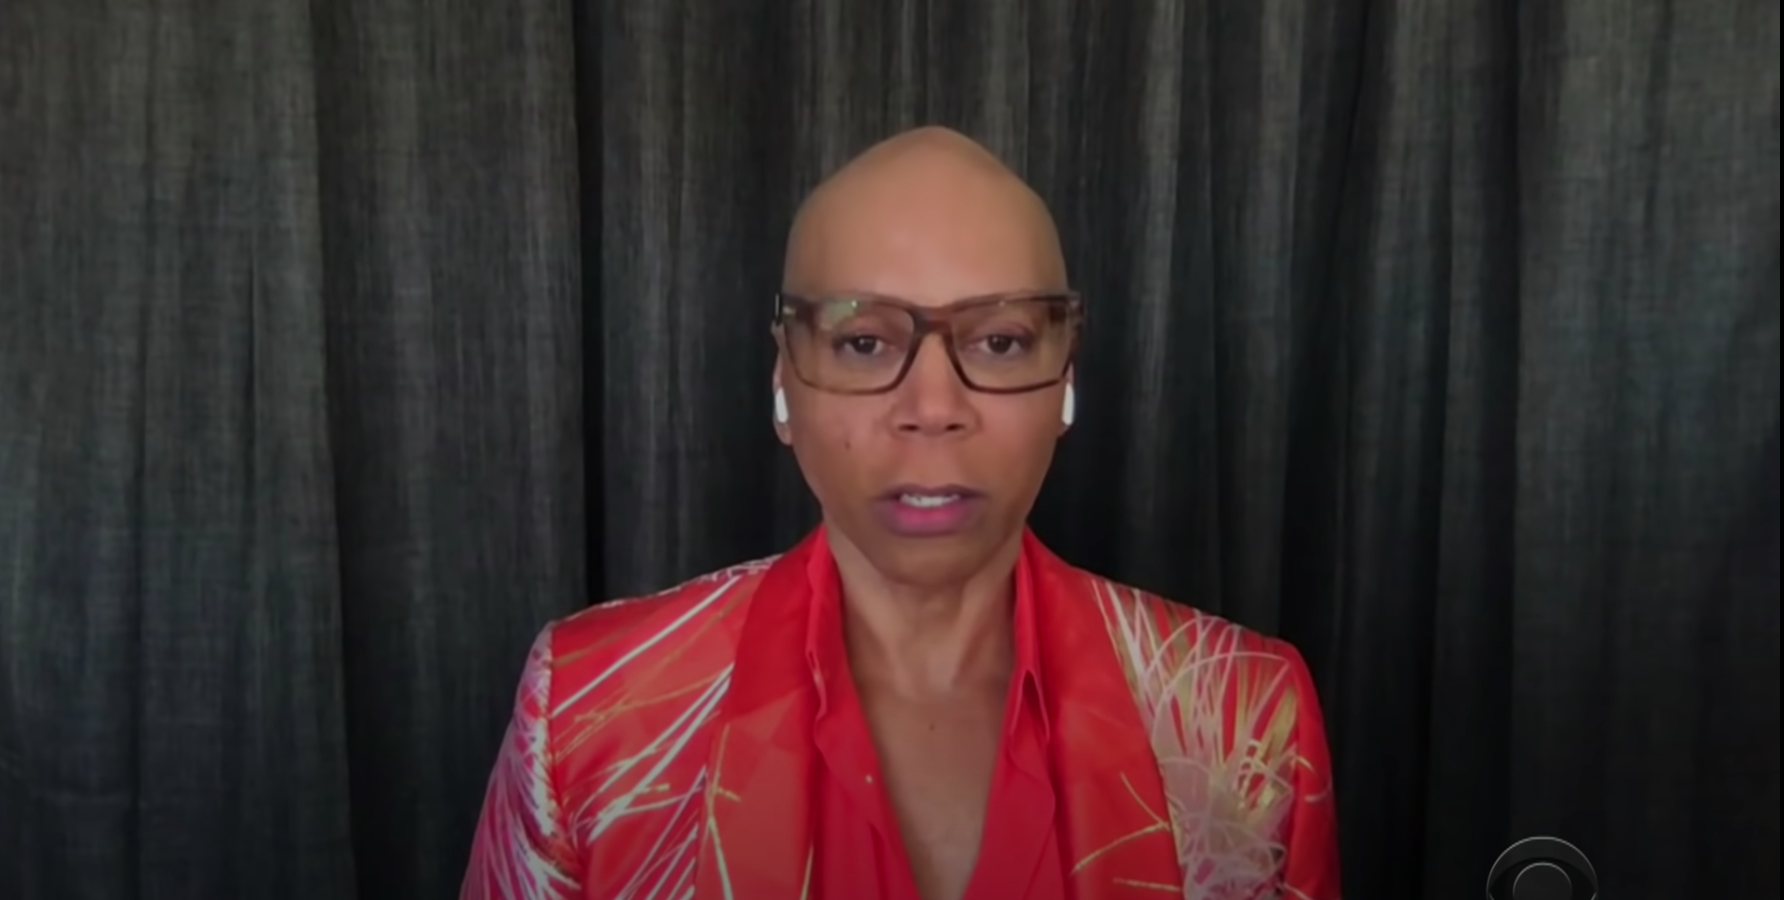 RuPaul in front of curtains